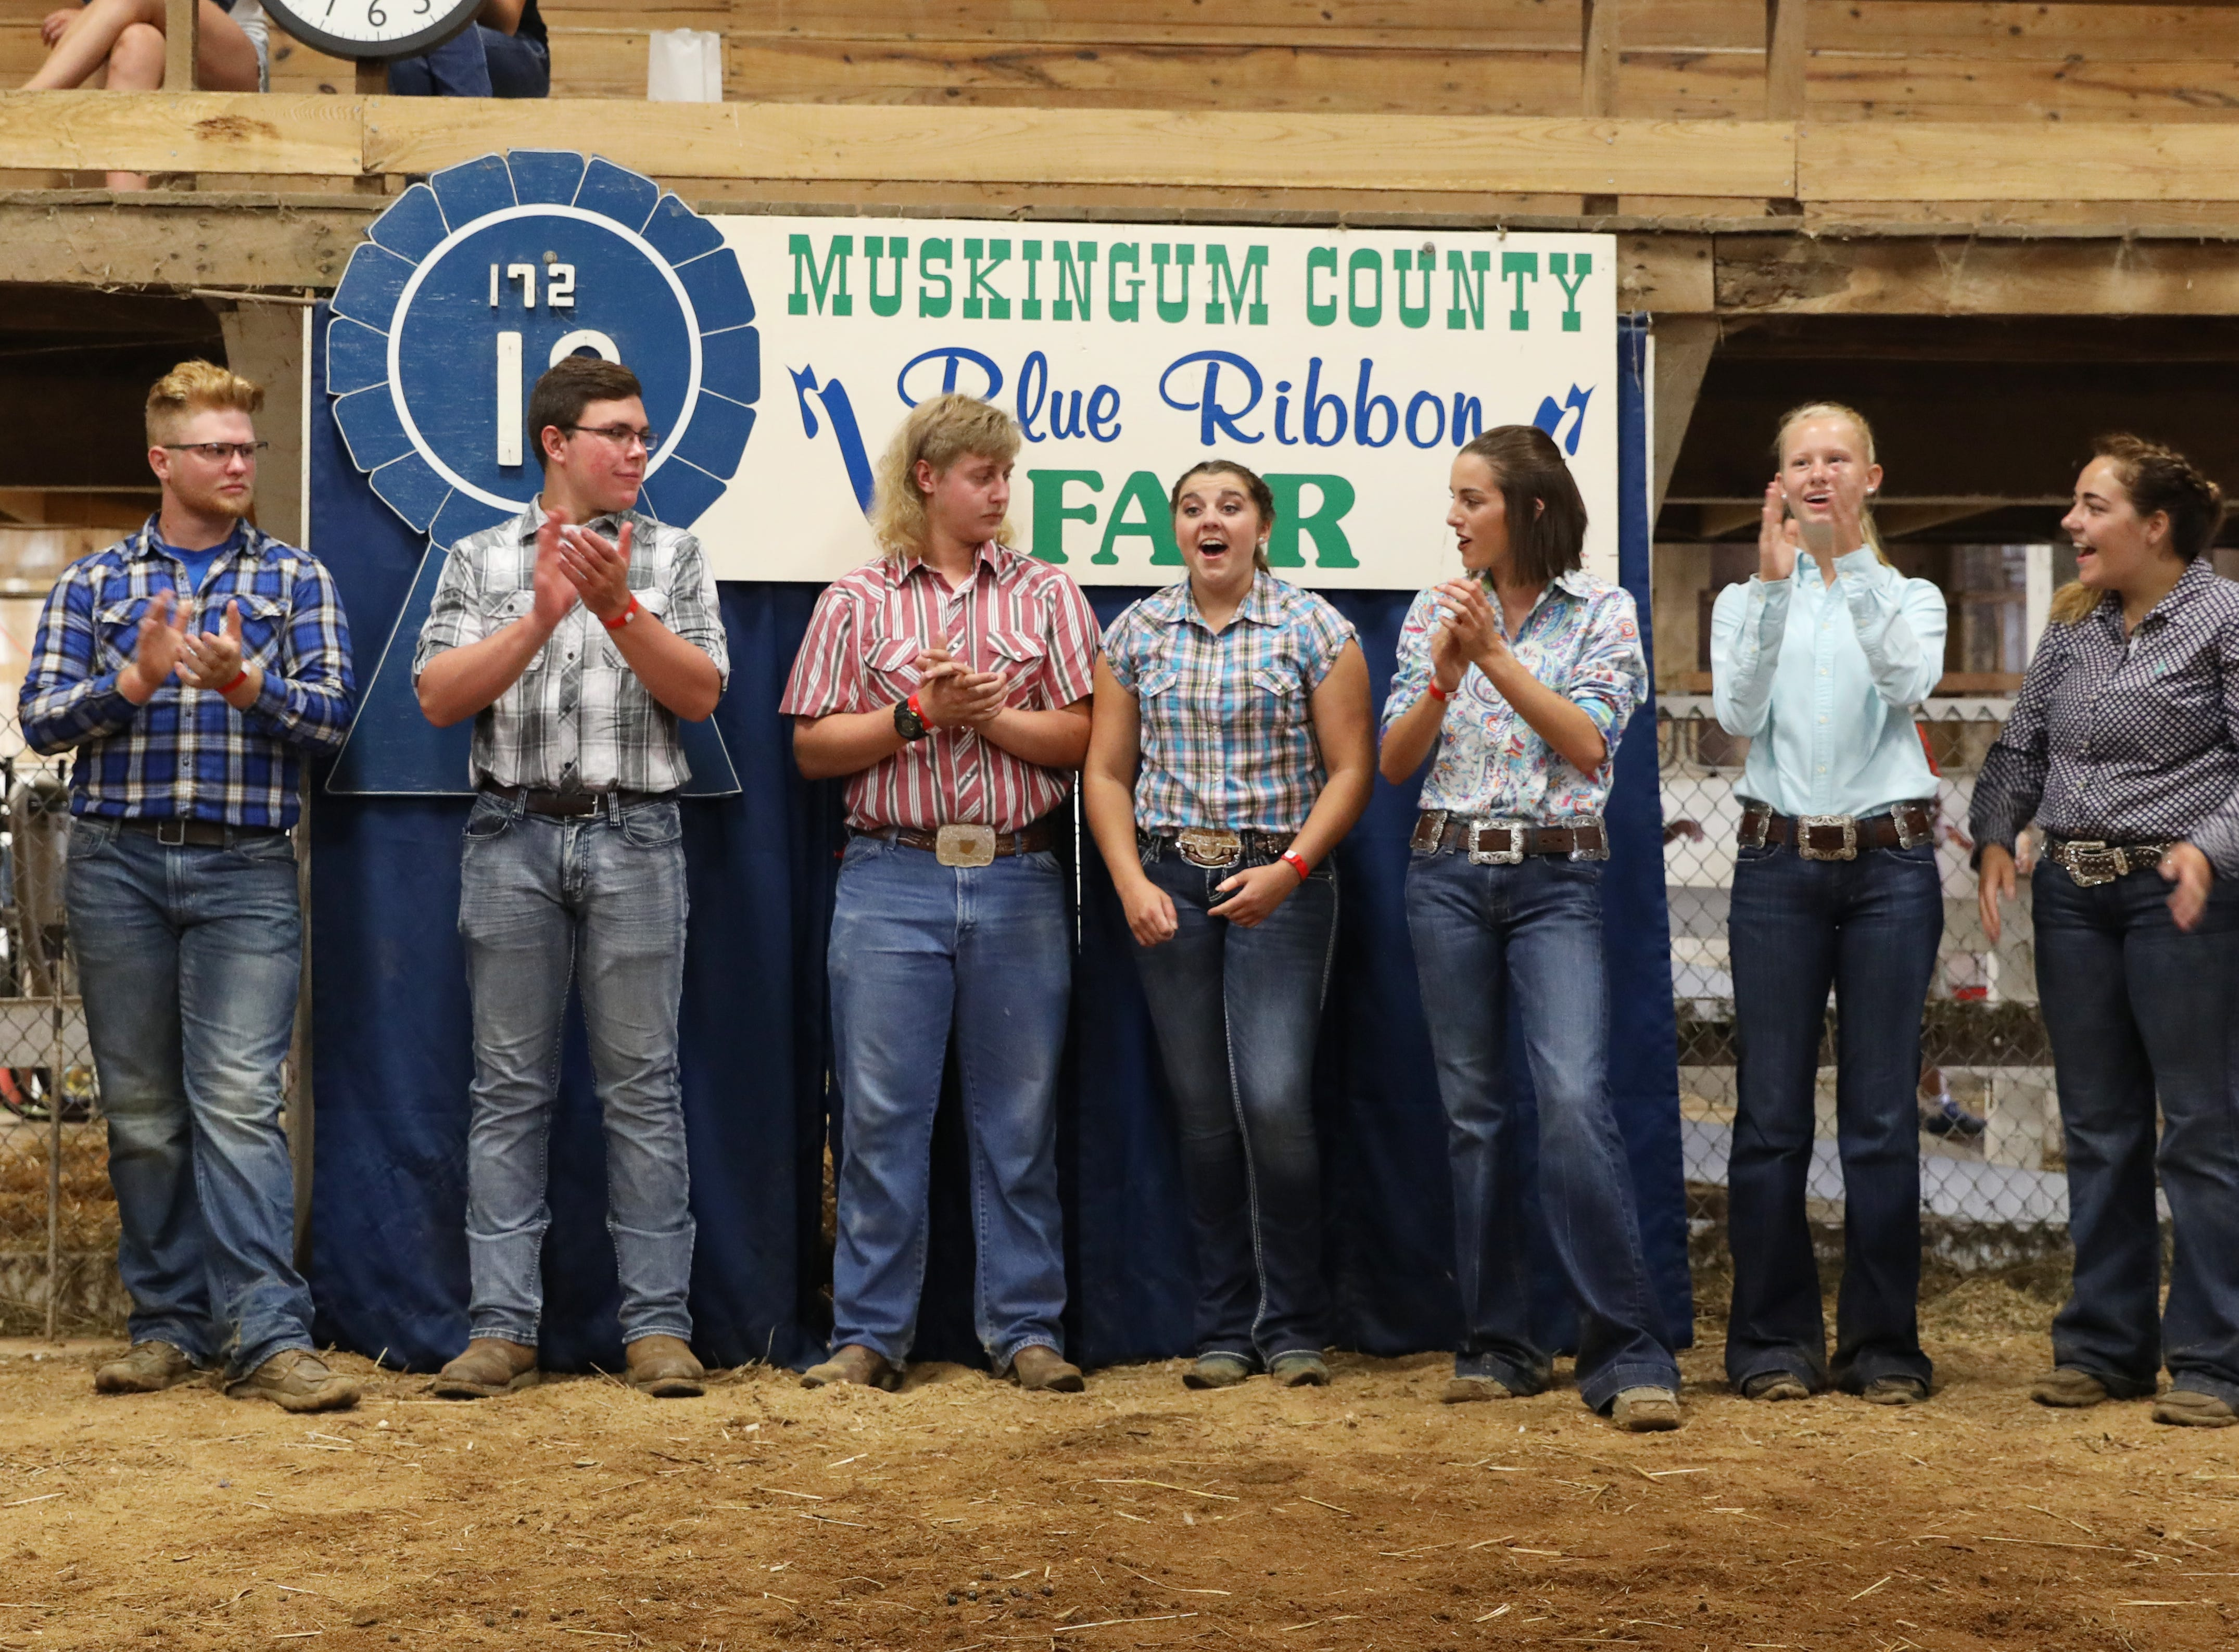 Class winners applaud as Jaylee Jordan is announced as Champion of Champions at the Muskingum County Fair on Friday. From left, the champions are Tyler McKenzie, Adam Crock, Tom Mozena, Jordan, Hainsley Hatfield, Kamryn Kreis and Brielle Vernon. Not pictured is Camryn Caplinger. For more photos visit www.zanesvilletimesrecorder.com.